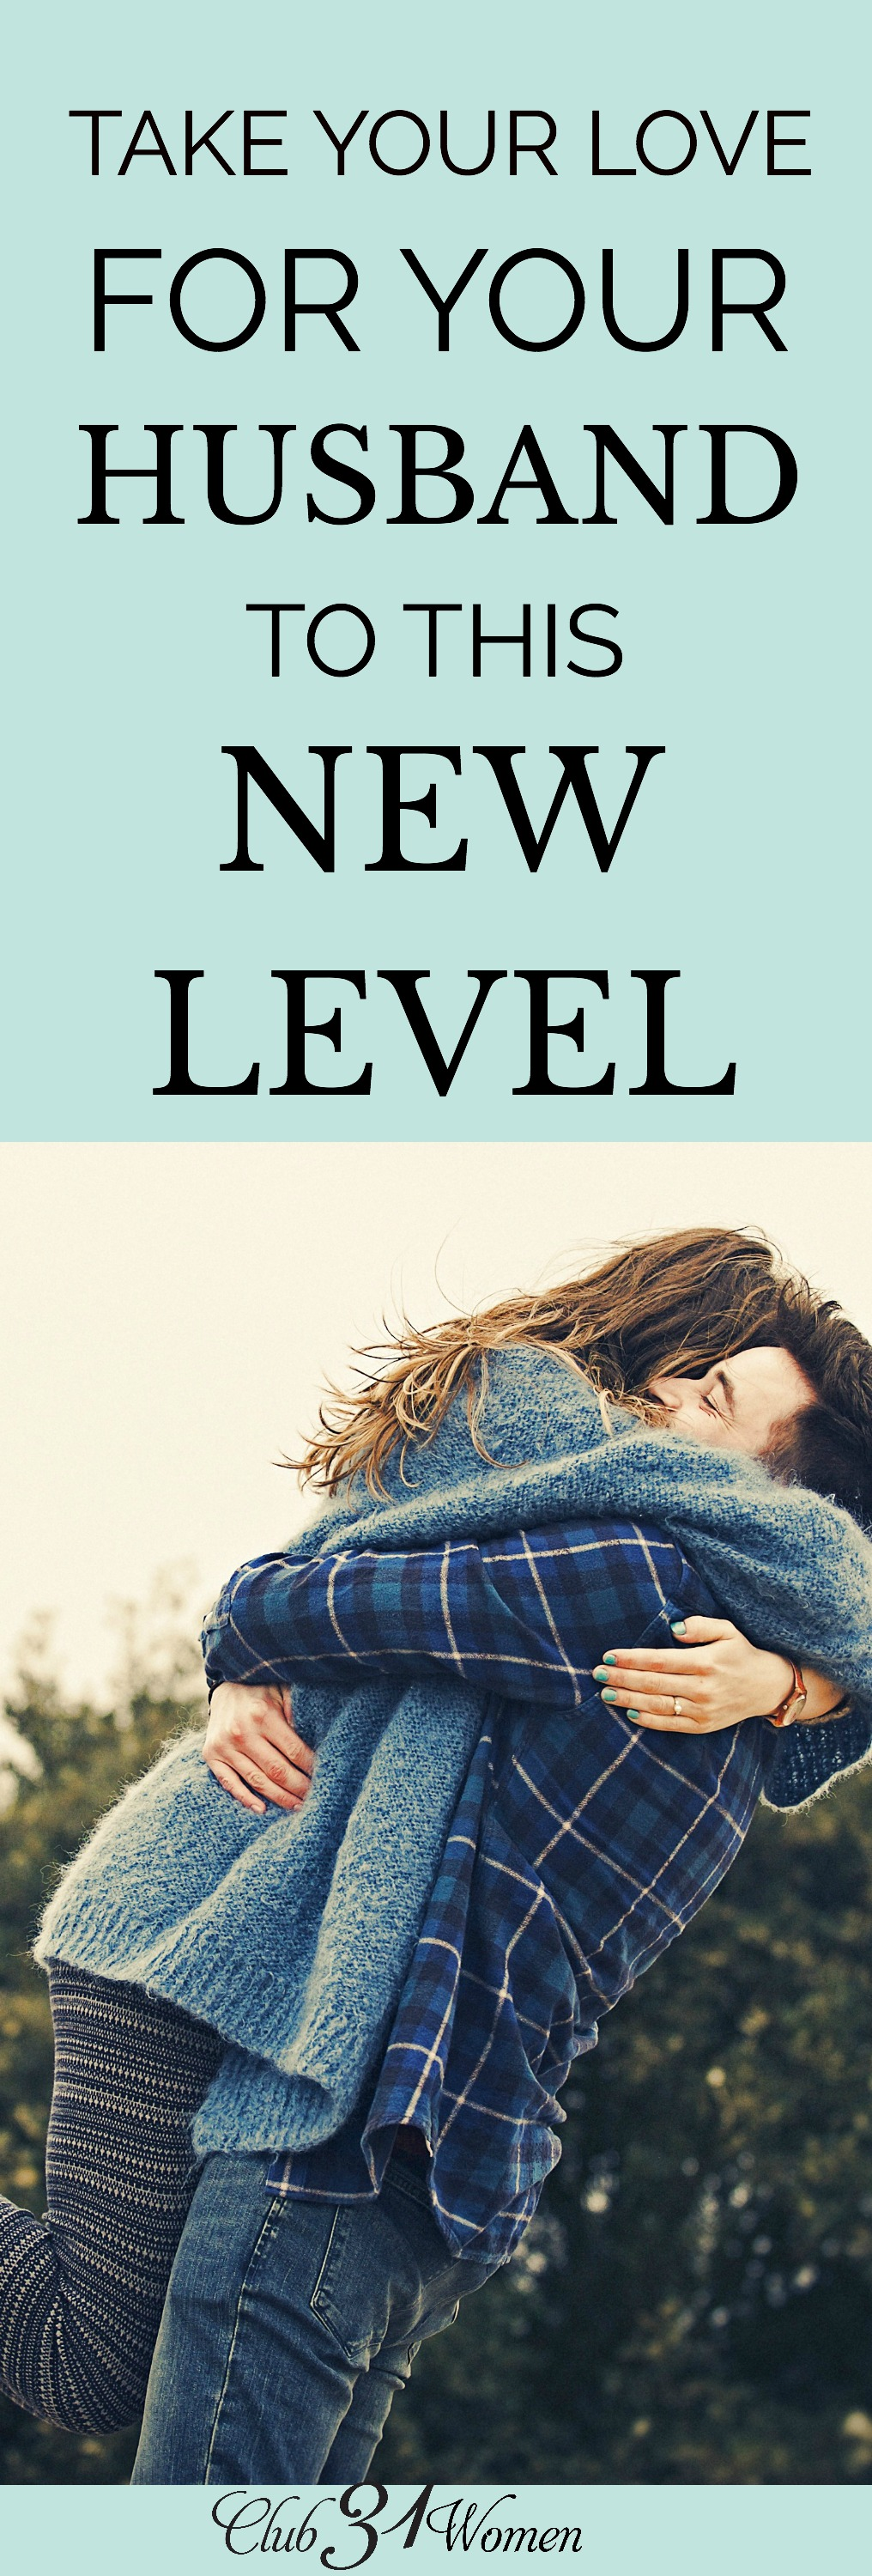 Do you love your man to the level of his most quiet needs? The needs that go unspoken. The needs he may not even recognize for himself. via @Club31Women